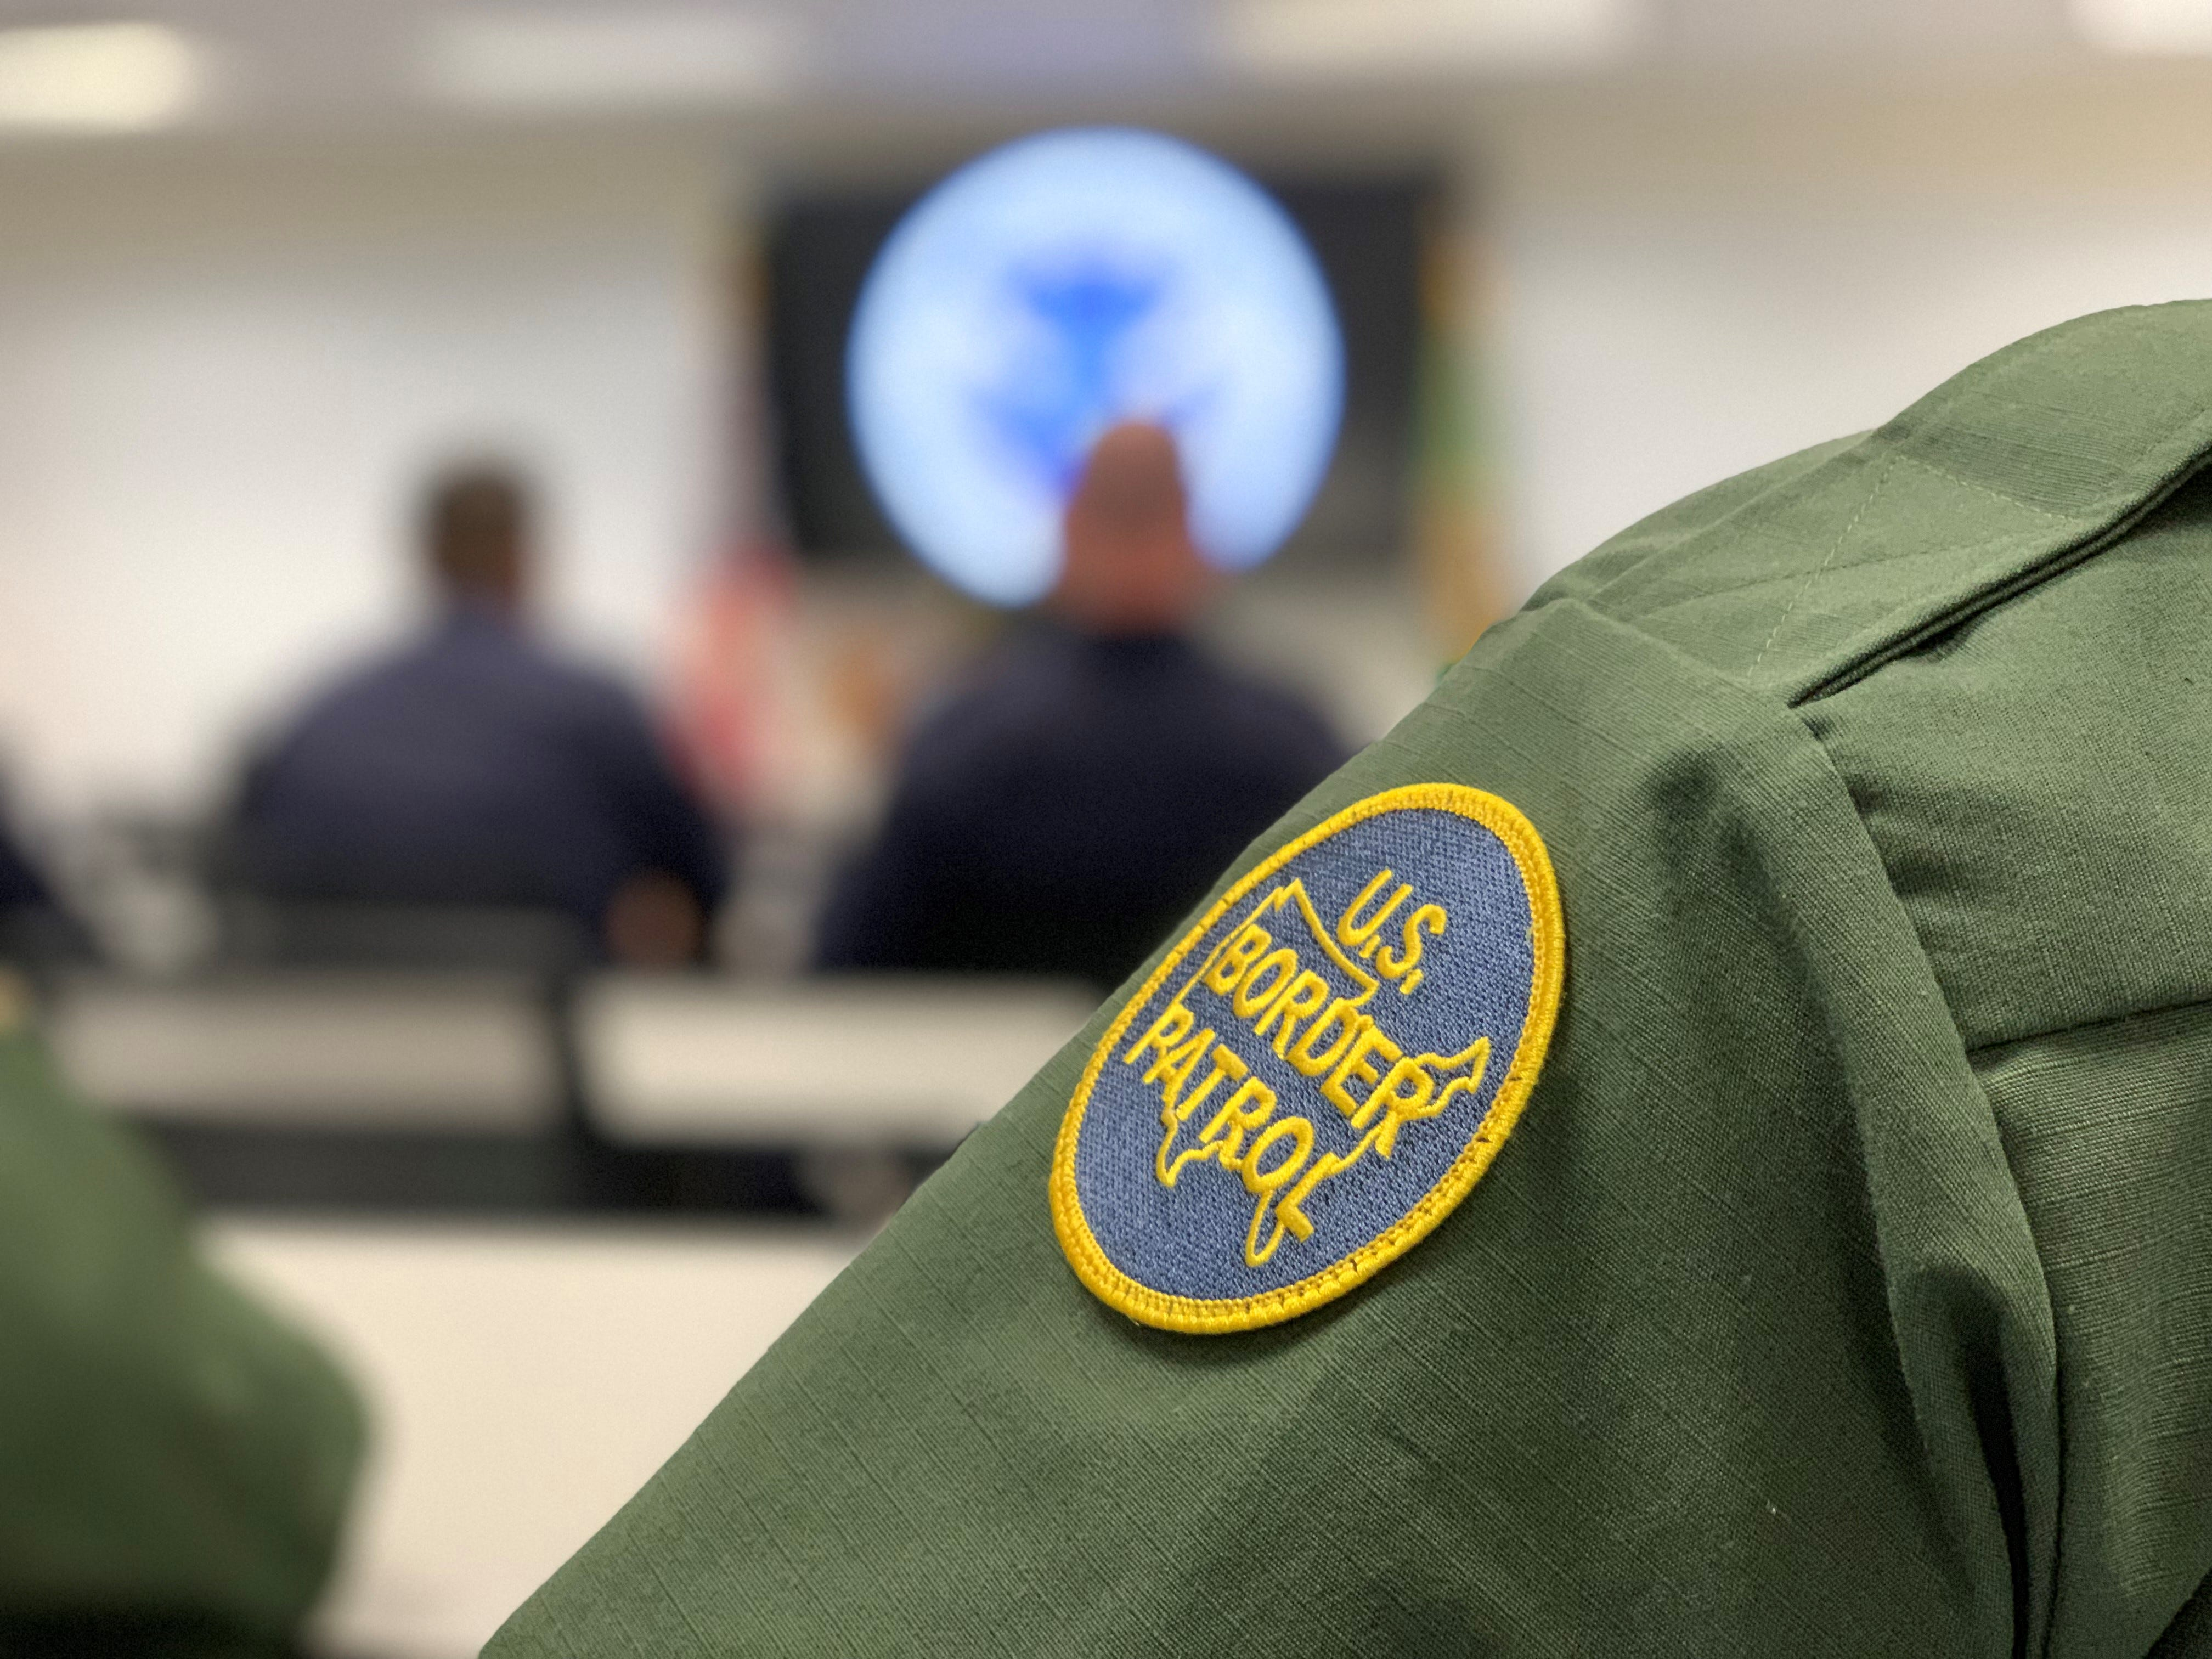 U.S. border agency misused congressional funds meant for migrant care, watchdog says